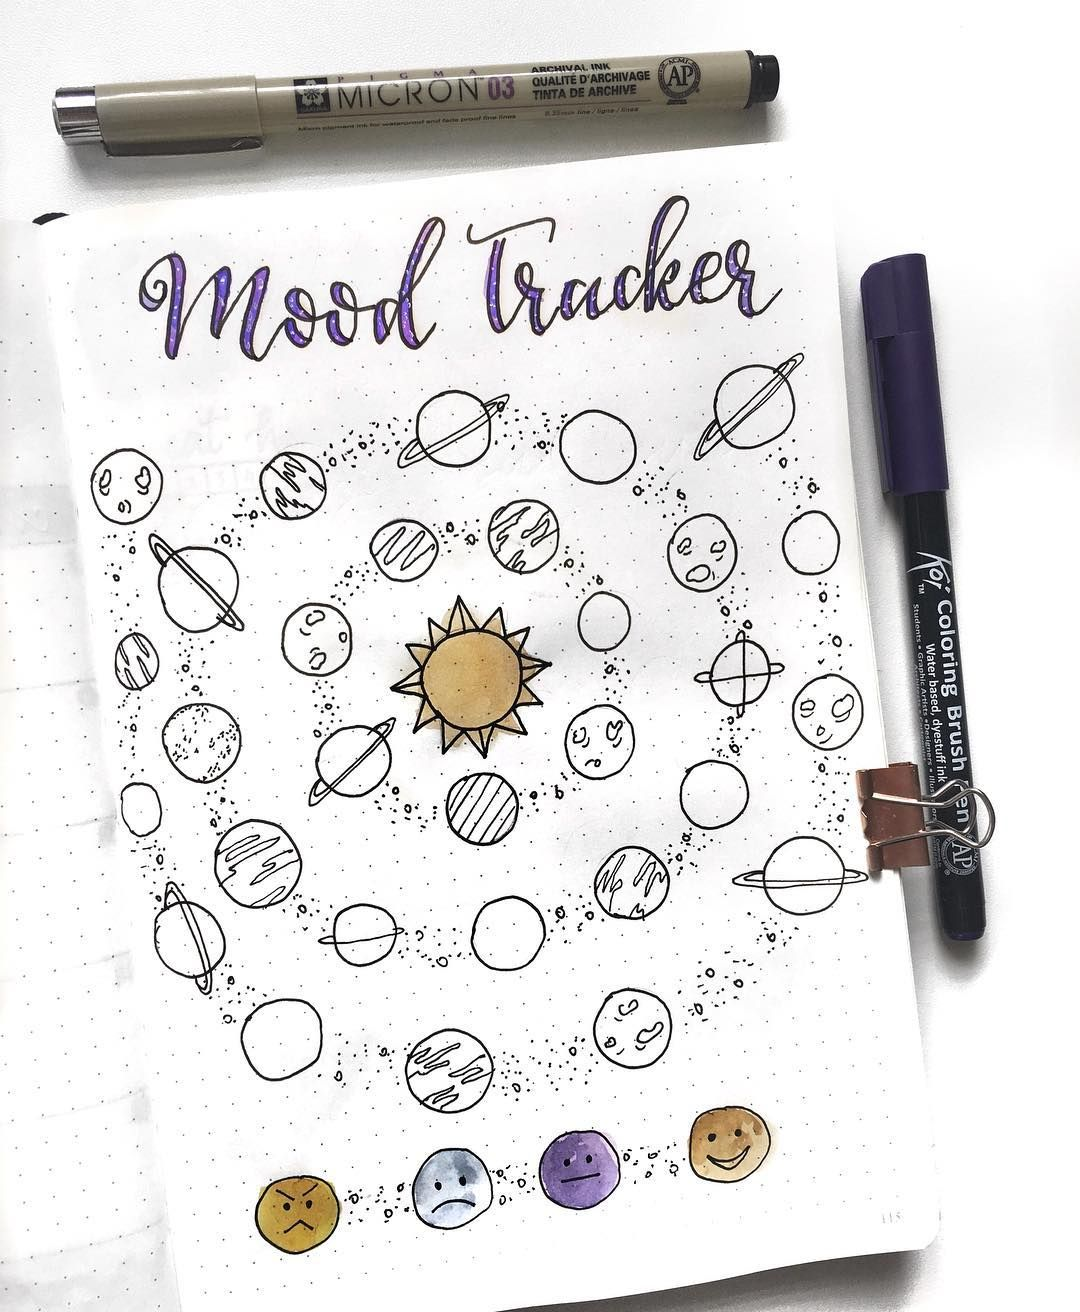 47 out of this world galaxy and space themed bullet journal spreads my inner creative